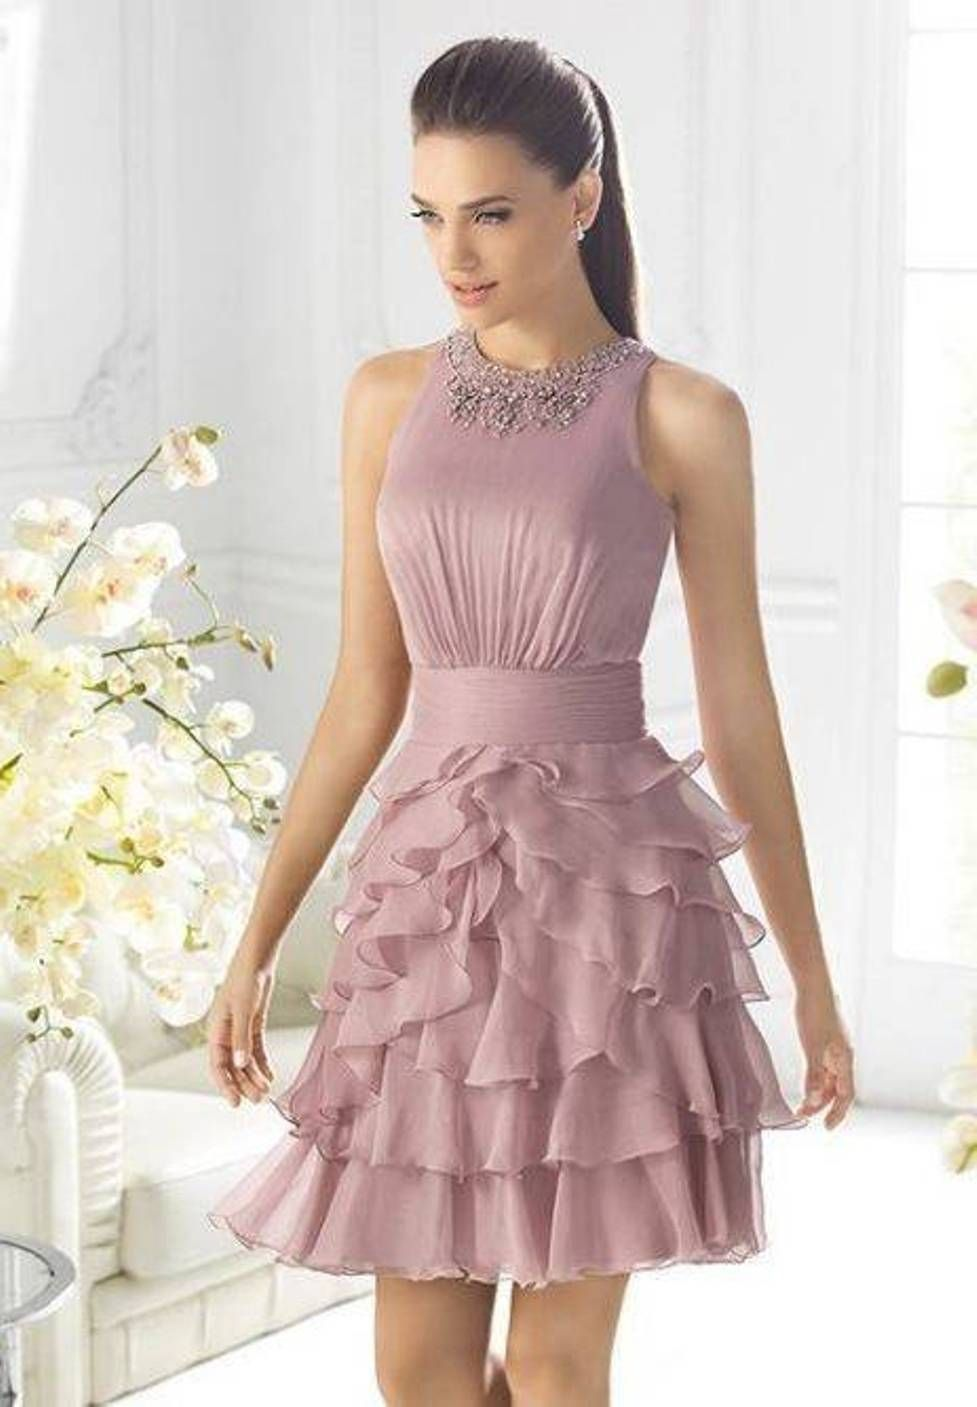 Pretty Cocktail Dresses For Women | Cocktail Dresses | Pinterest ...